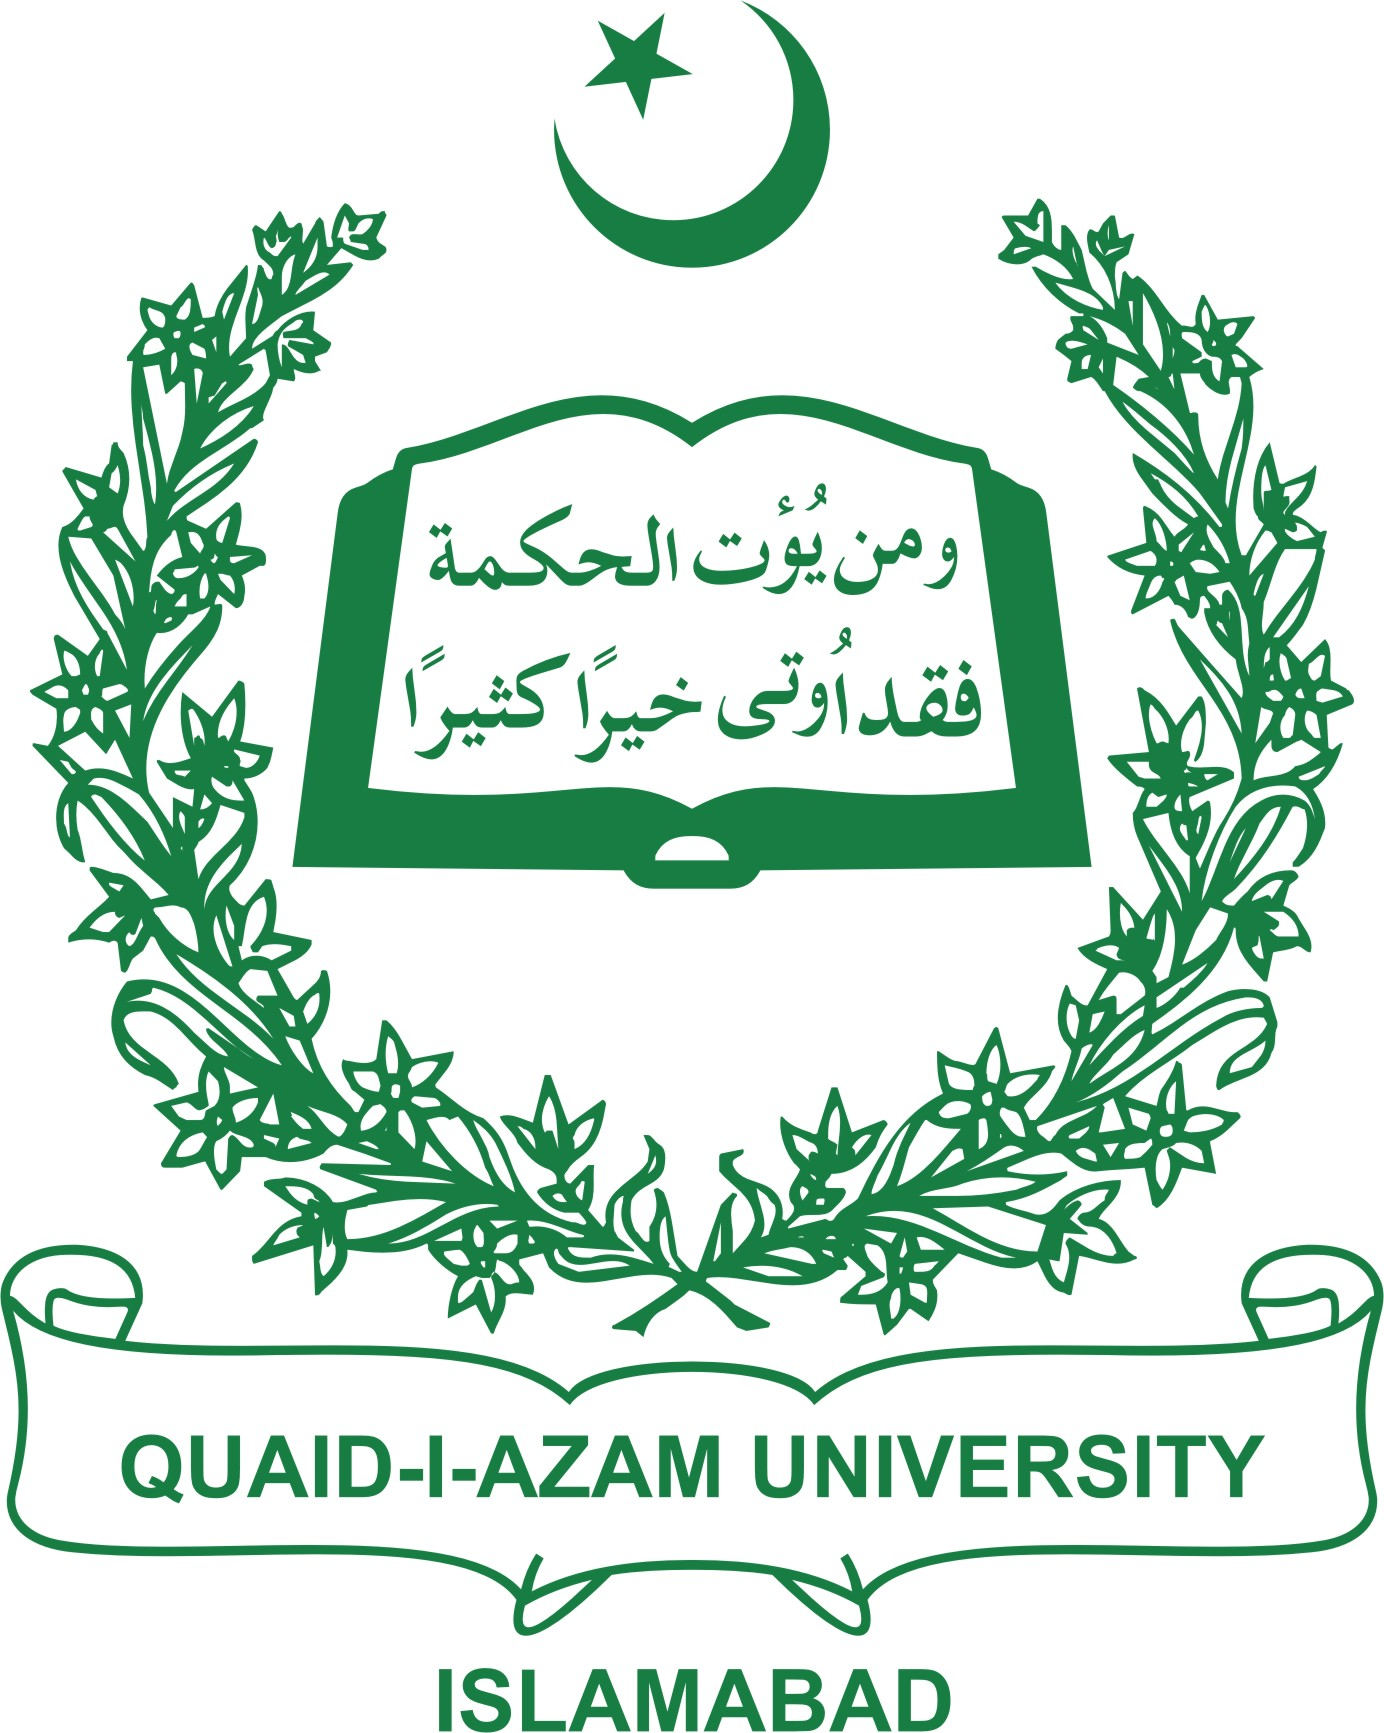 Quaid-i- Azam University B.A./B.Sc. Part (I&II) Admission Form 2016